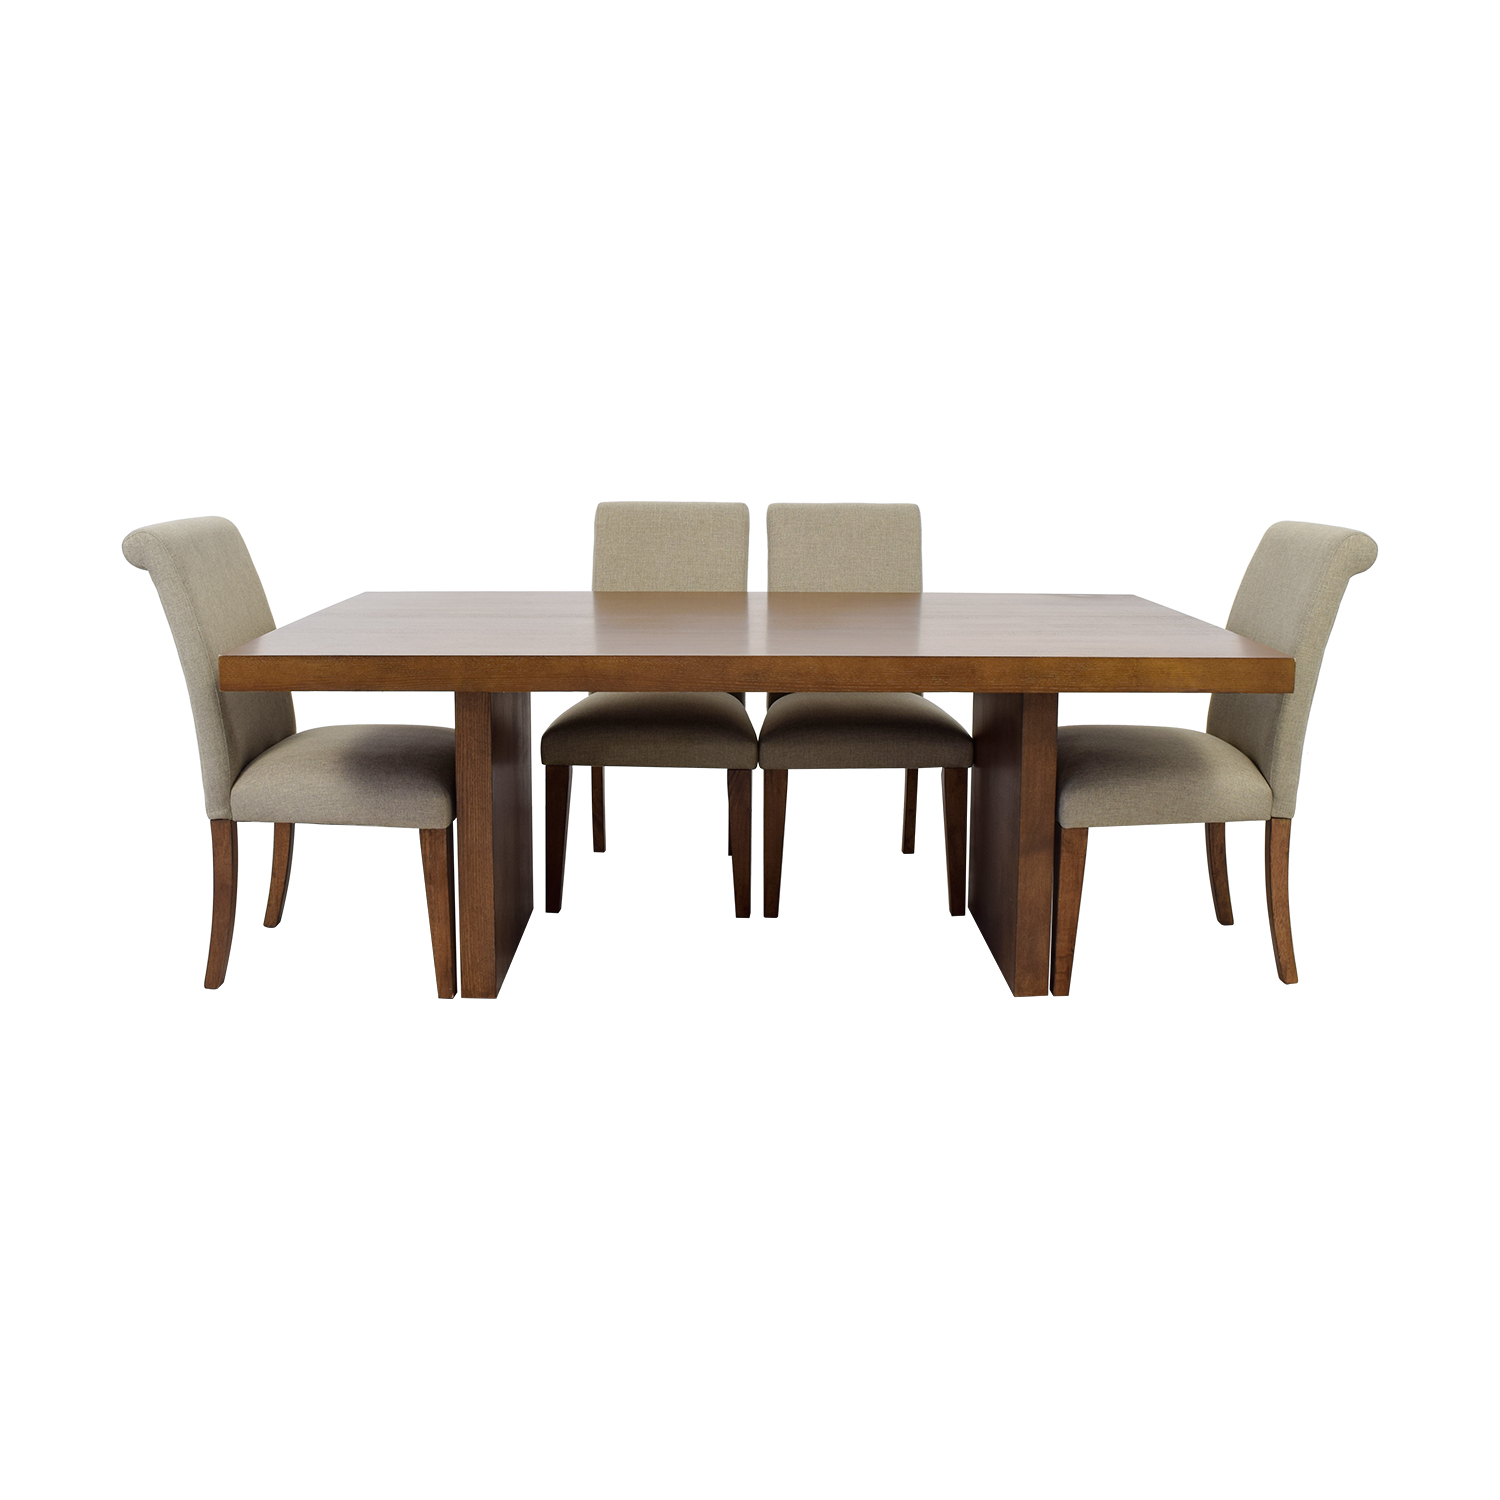 Brilliant 82 Off Macys Macys Wood Dining Set With Upholstered Chairs Tables Pdpeps Interior Chair Design Pdpepsorg